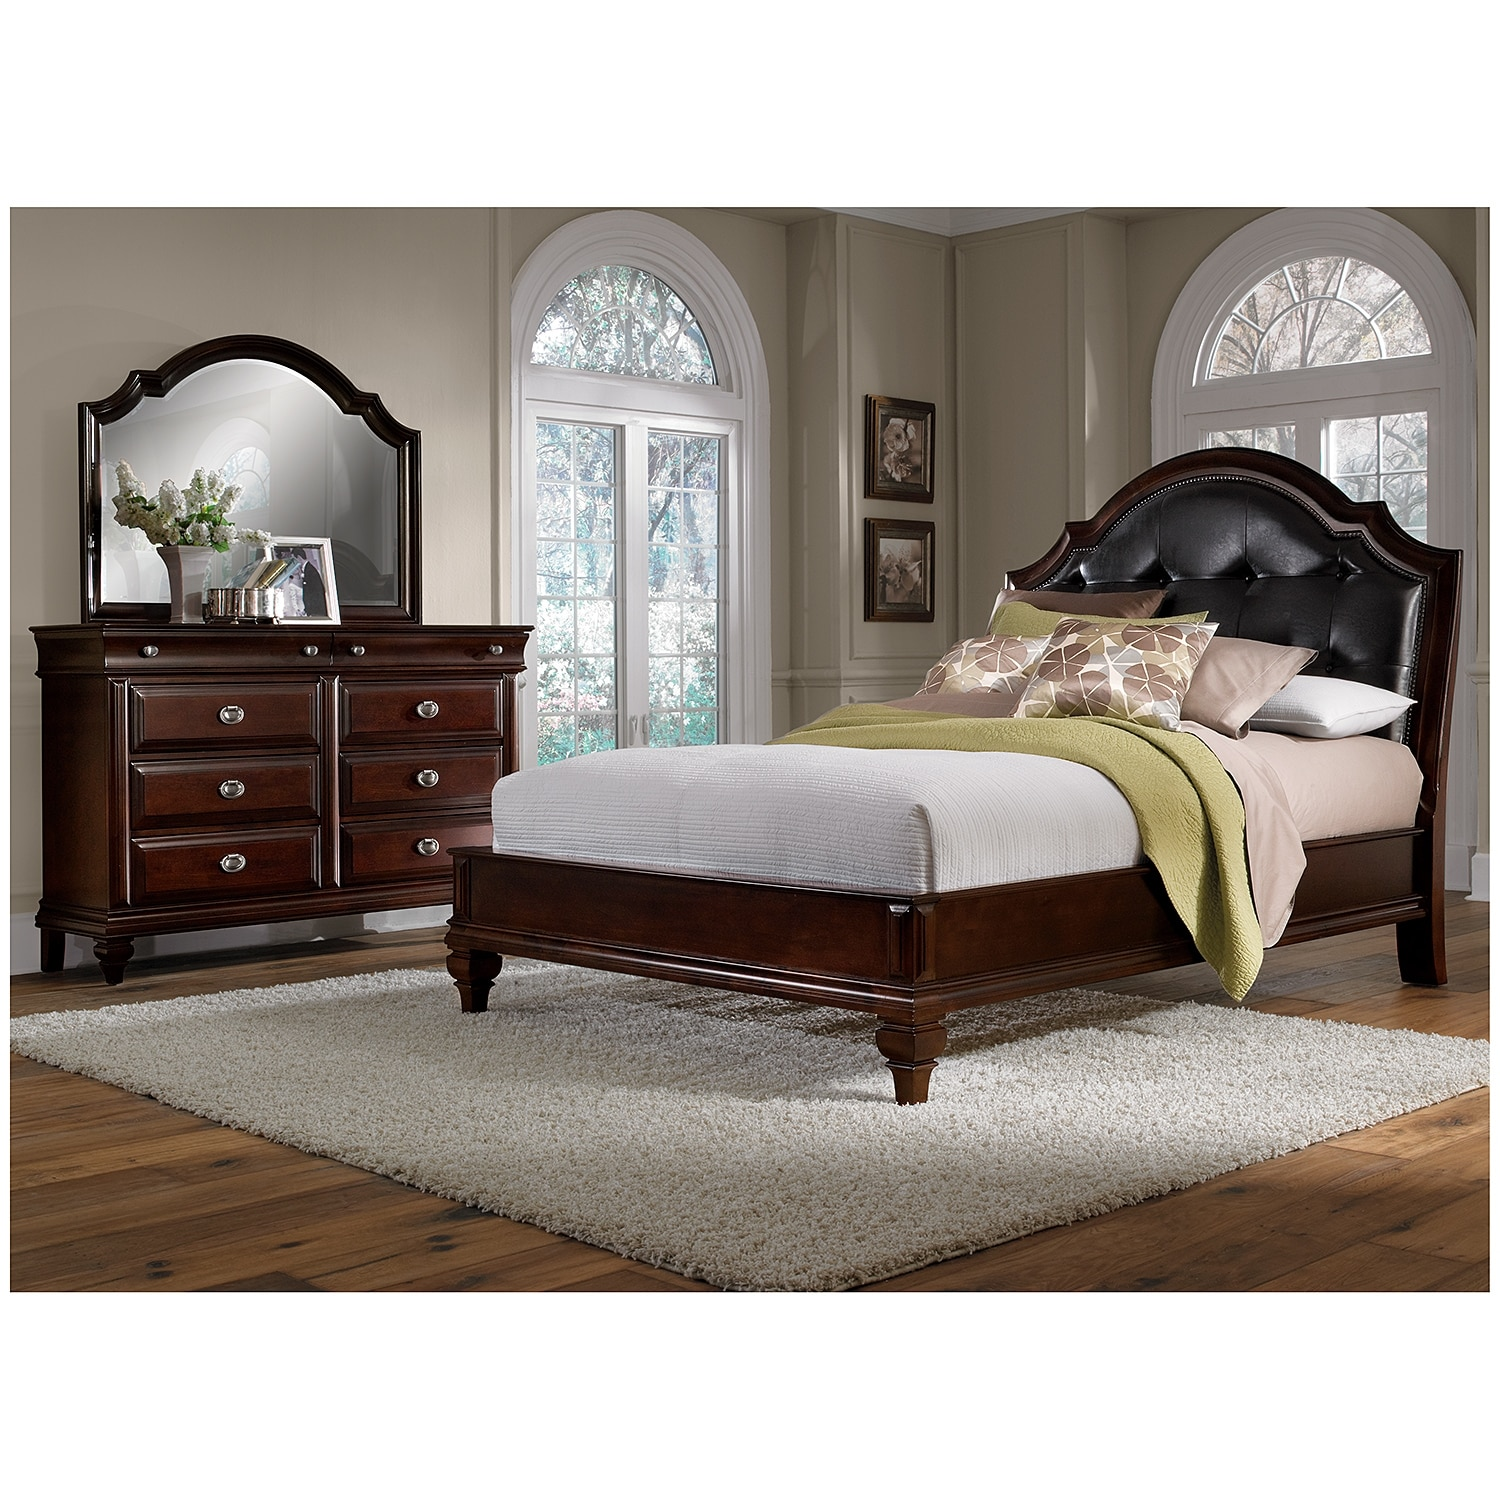 Shop 5 piece bedroom sets american signature furniture - Stores that sell bedroom furniture ...